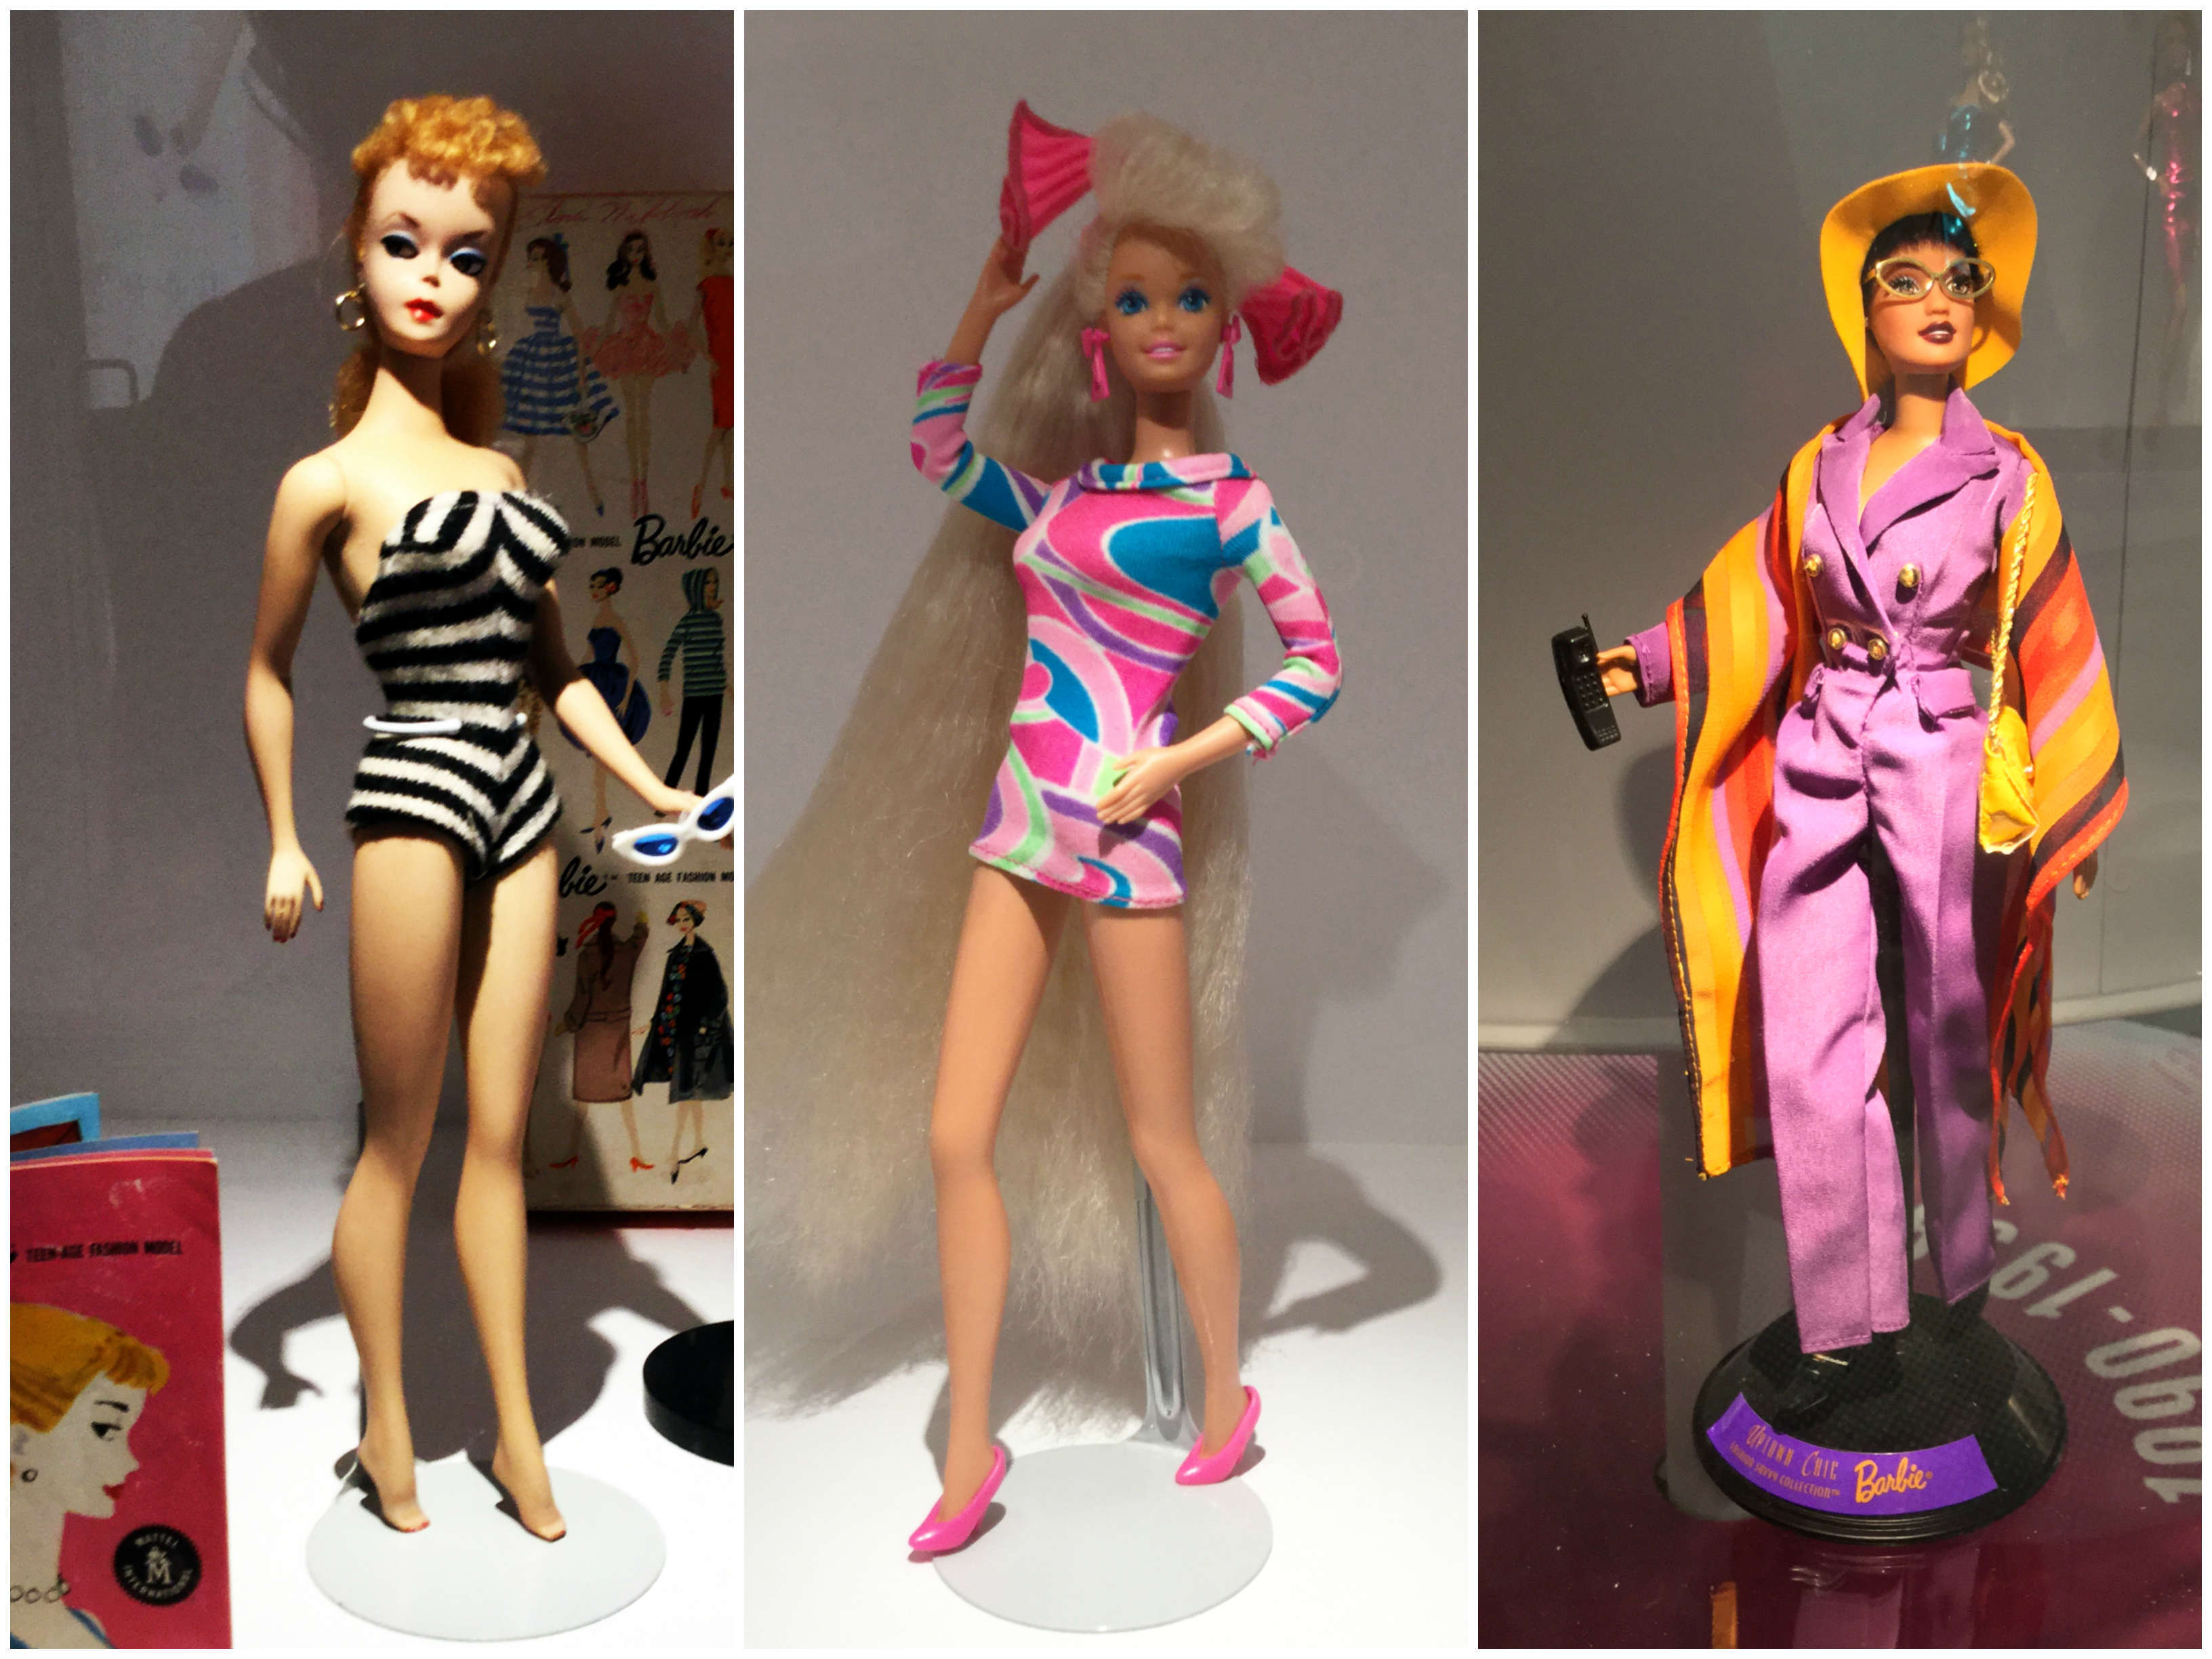 barbie-the-icon-mudec-3